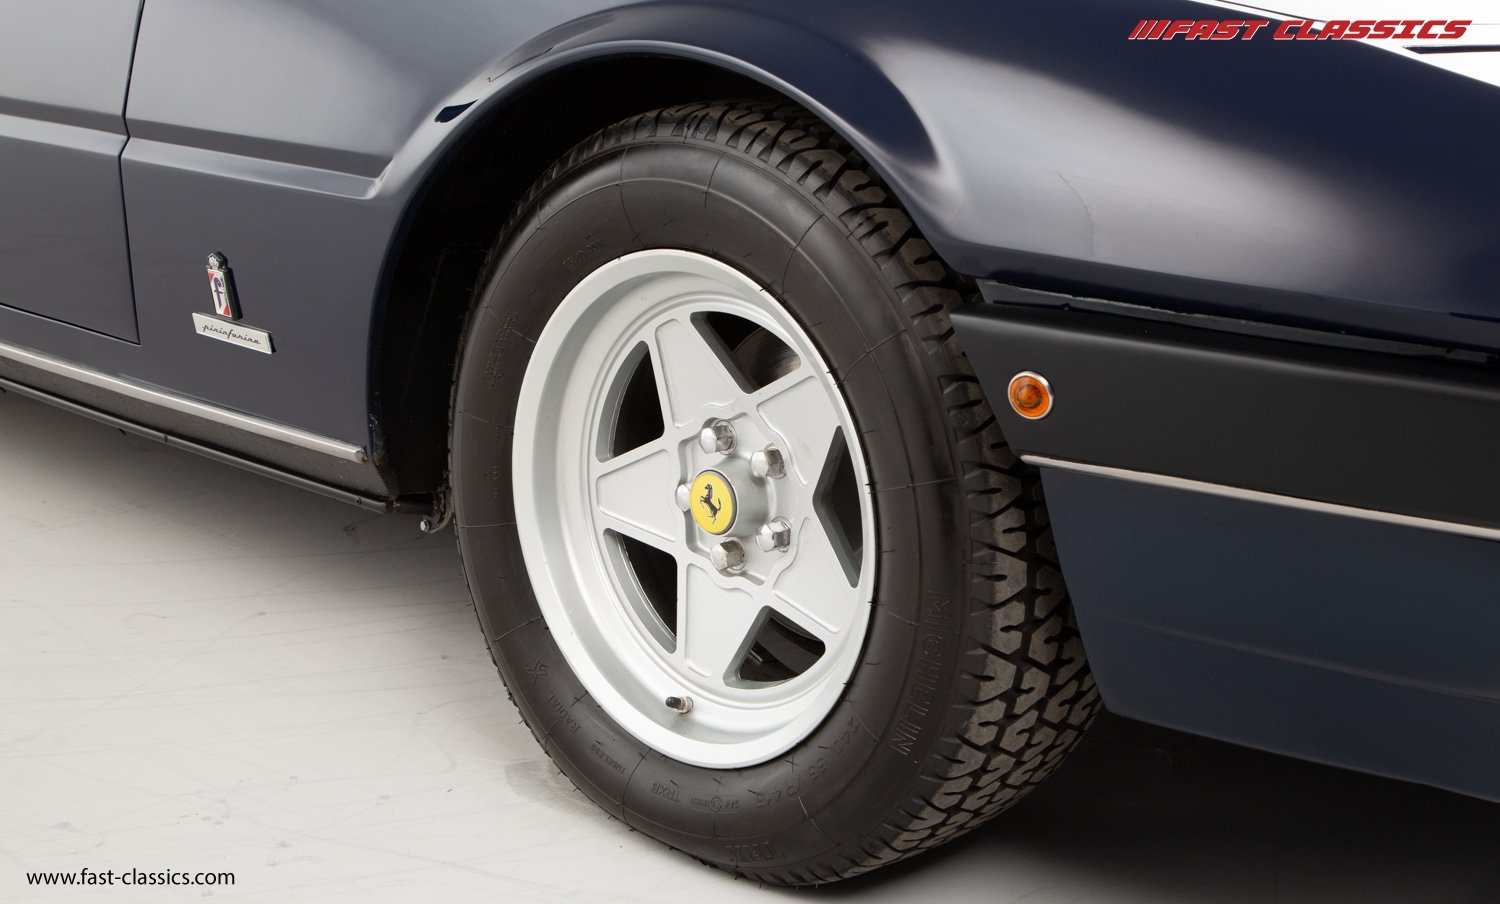 1980 FERRARI 400I // BLU POZZI // UK RHD // 1 OF 180 UK SUPPLIED For Sale (picture 20 of 21)